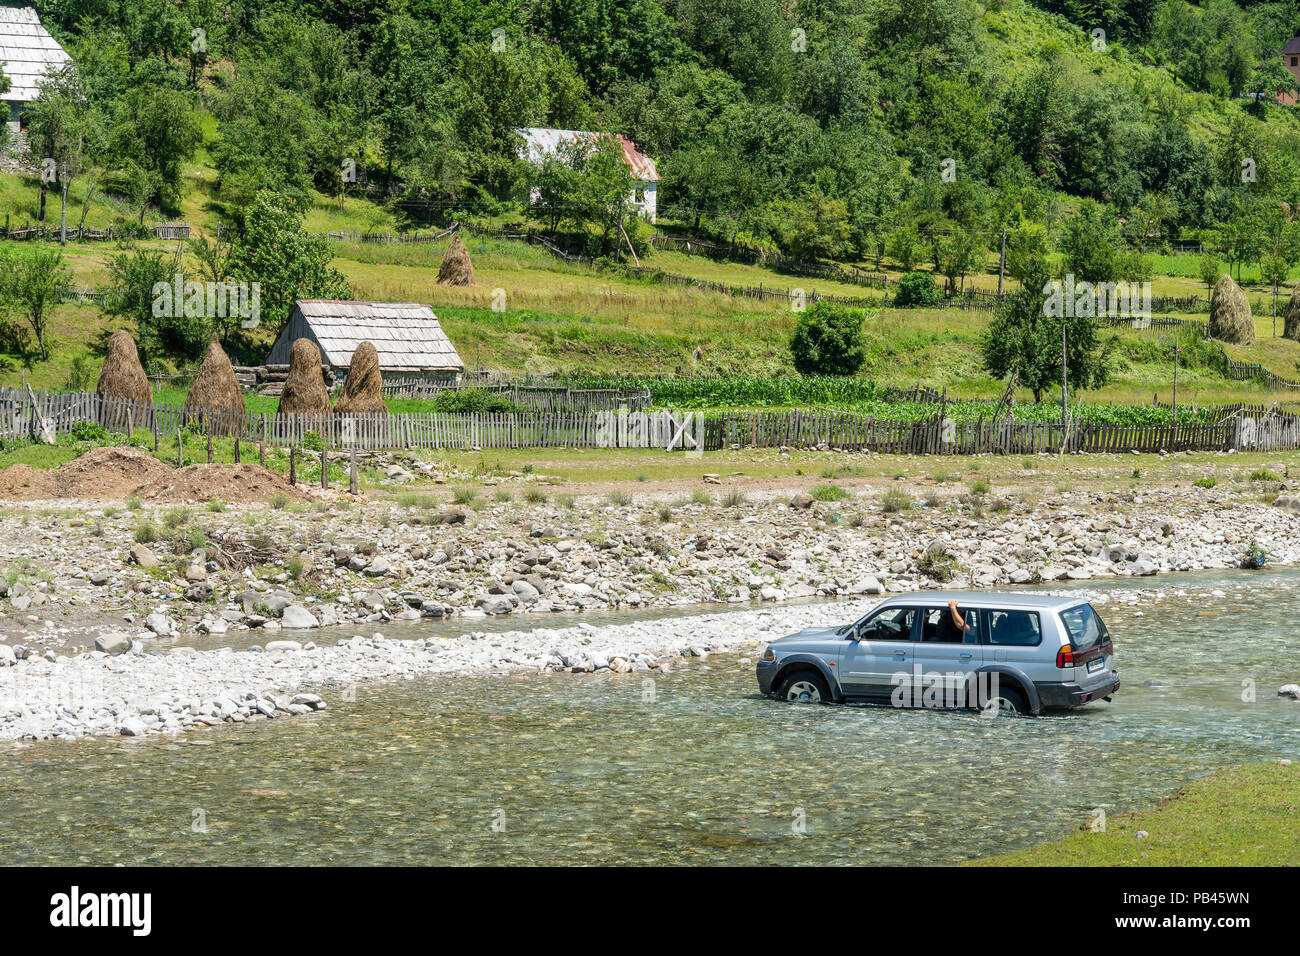 A car fording the river Grencars in Vermosh, the most northerly village in Albania, just below the border with Montinegro.  Albania. - Stock Image